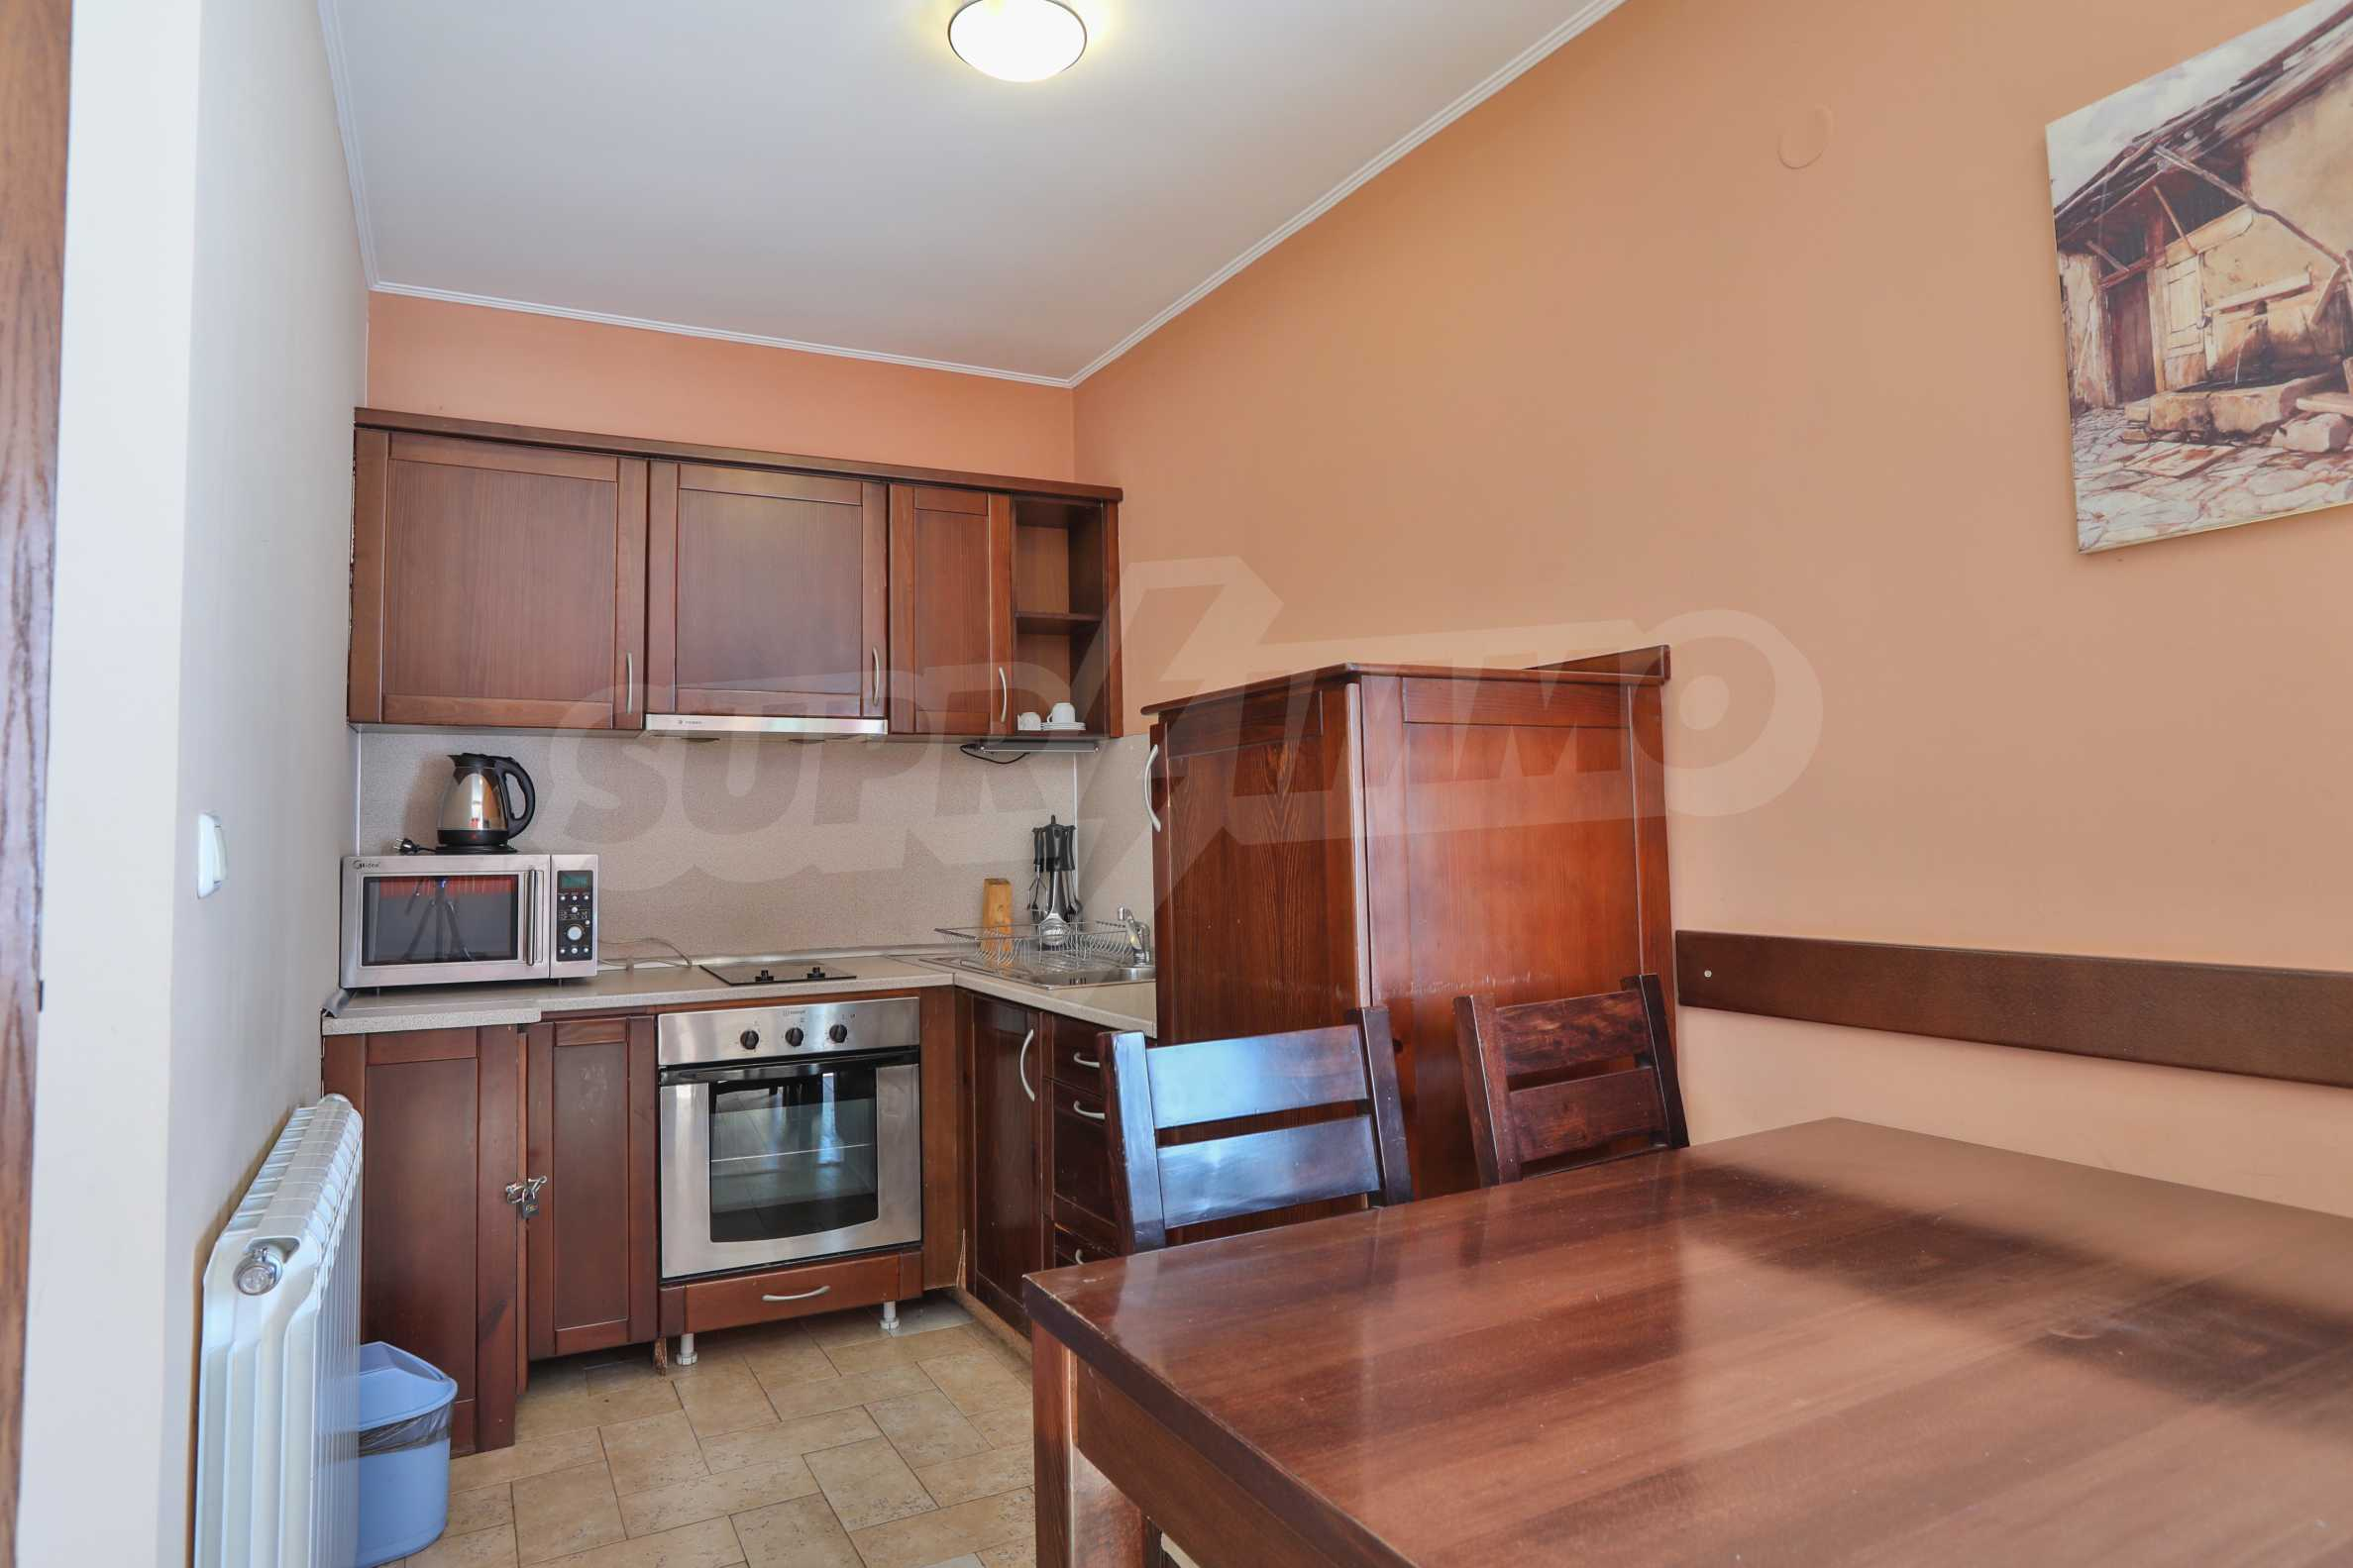 Fully furnished two-bedroom chalet in Redenka Holiday Club 6